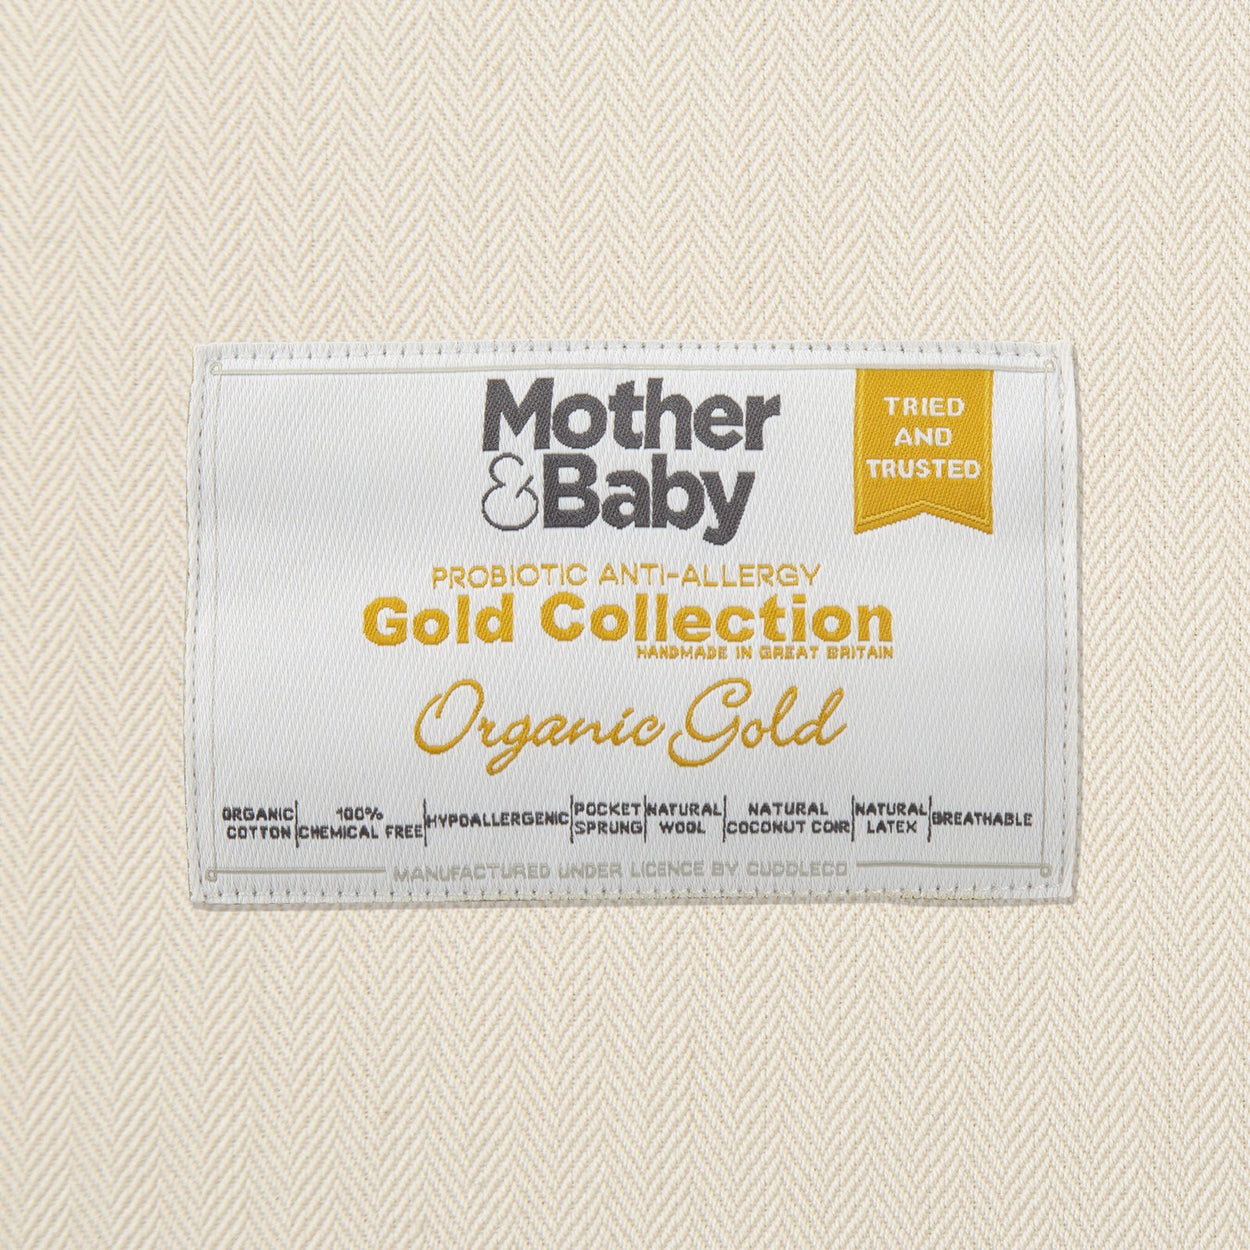 Mother&Baby Organic Gold Chemical Free Cot Bed Mattress 140 x 70cm Mother & Baby